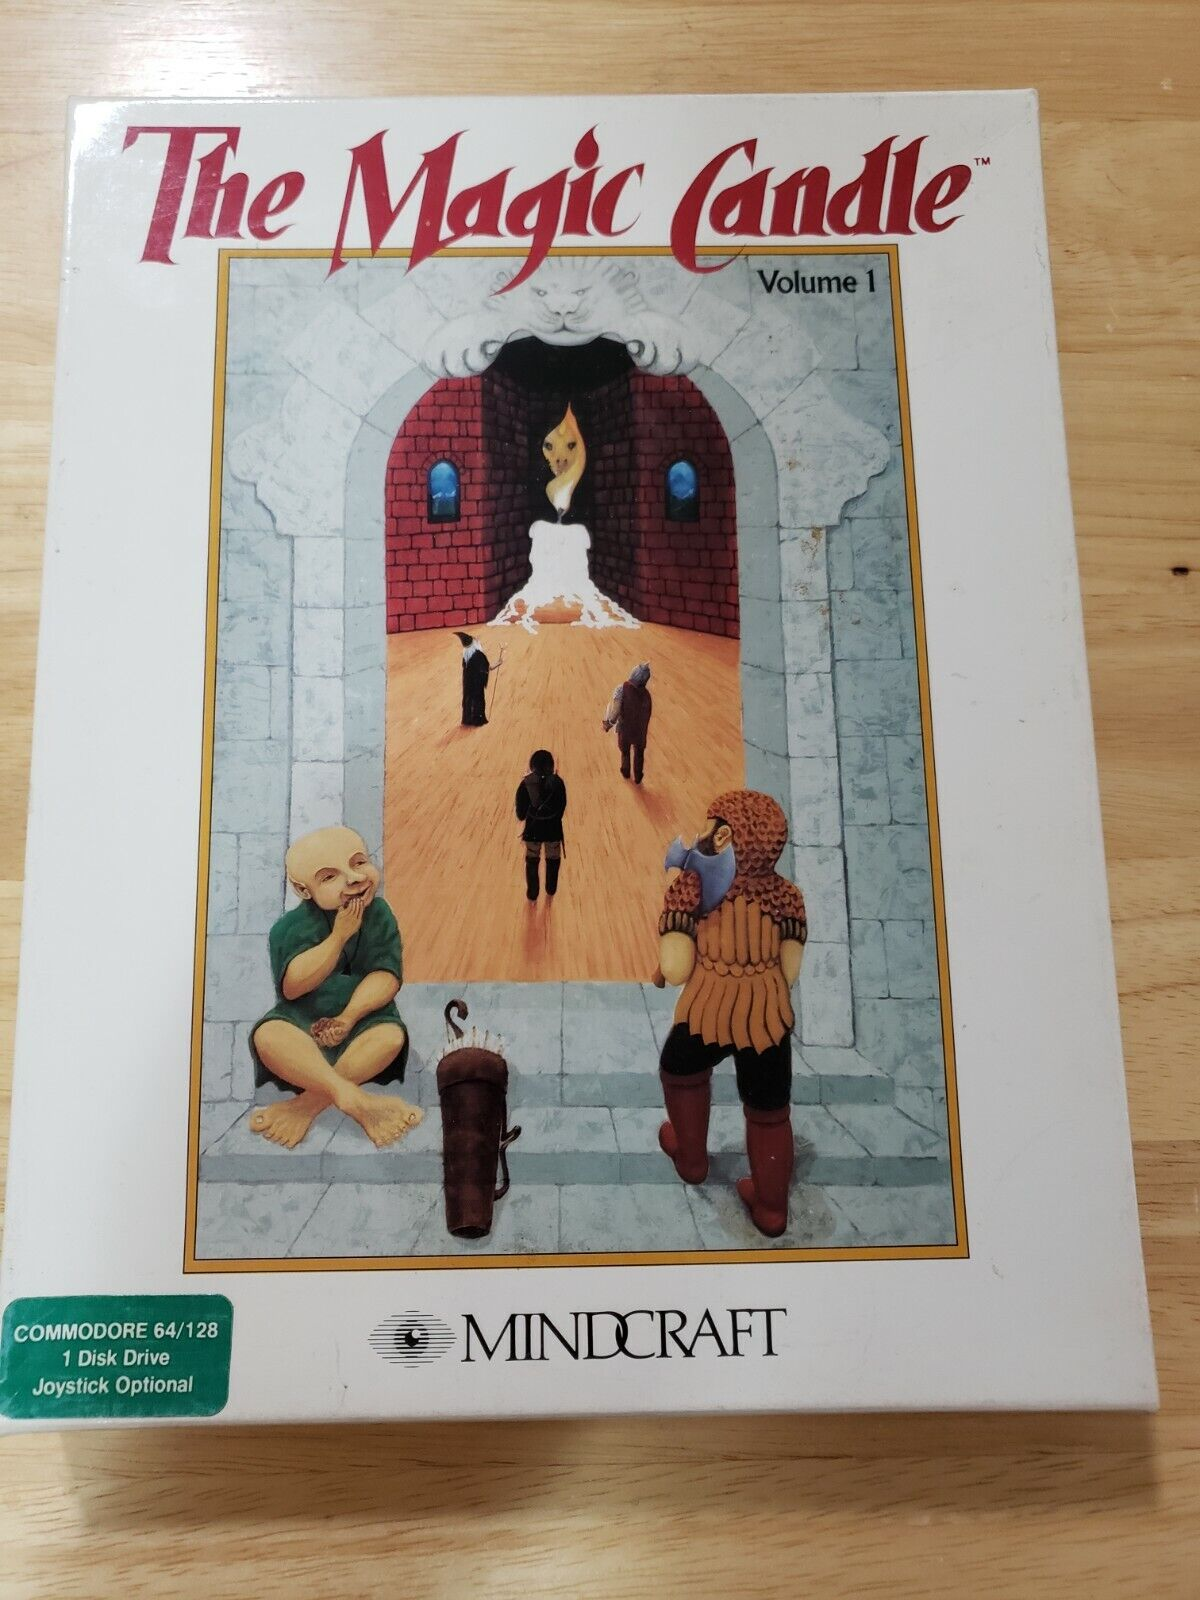 Computer Games - THE MAGIC CANDLE Commodore 64 - 128 Computer Game  Complete CIB UNTESTED